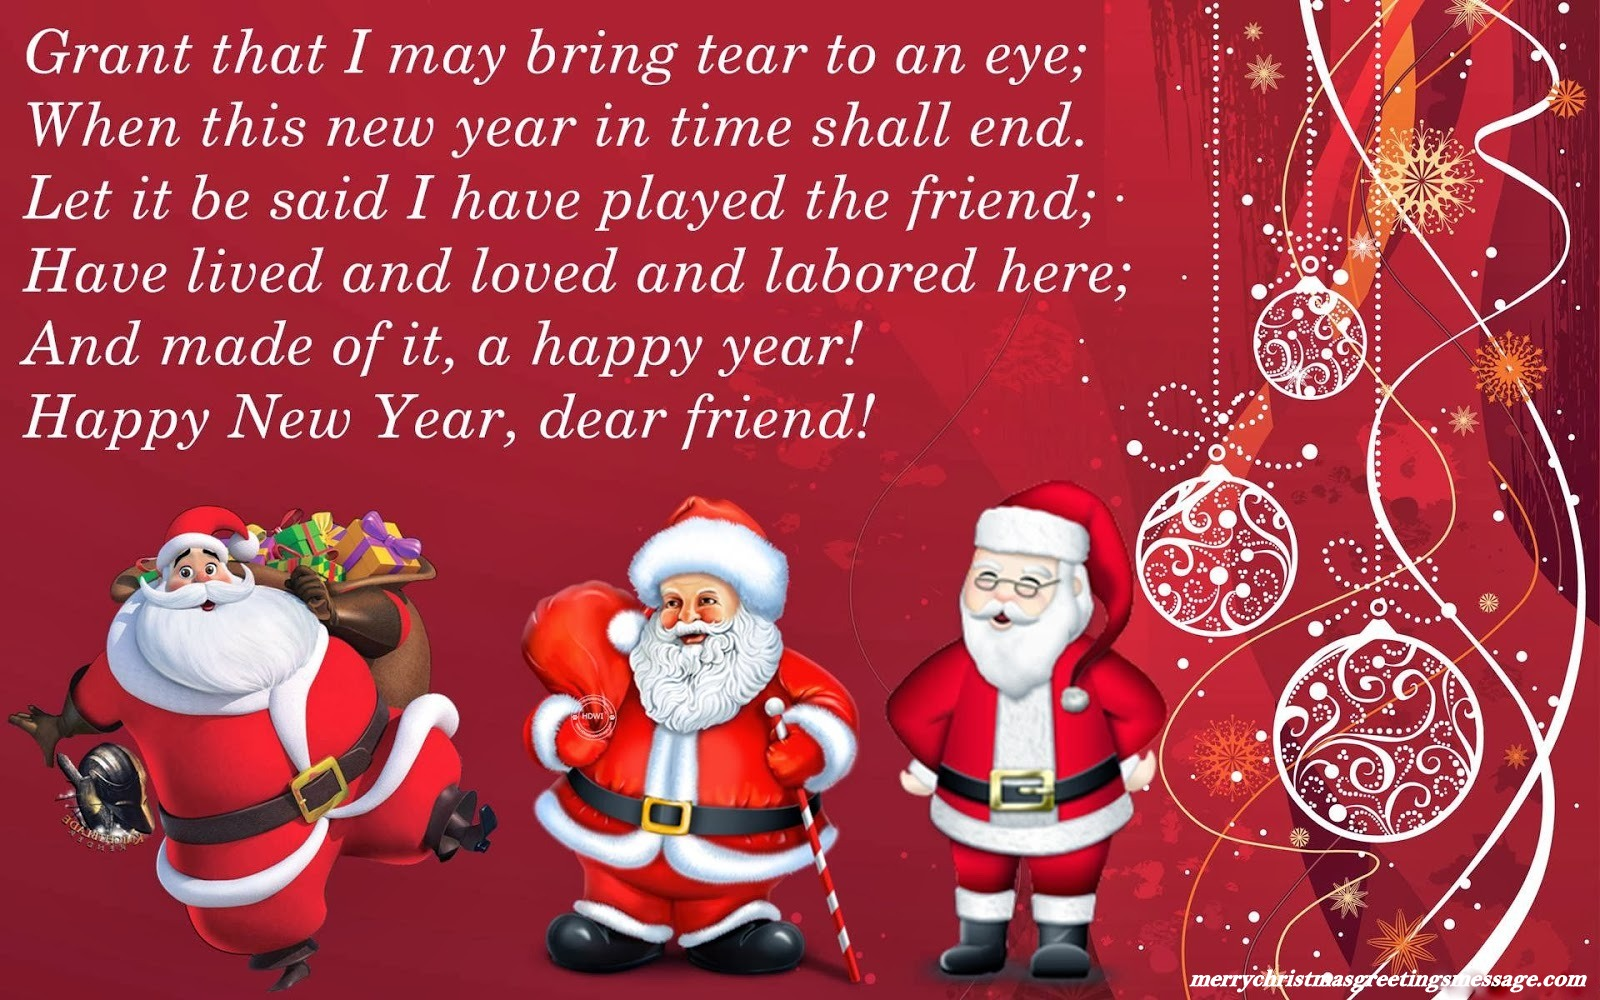 Merry Christmas Wishes Messages Quotes For Friends Family Everyone